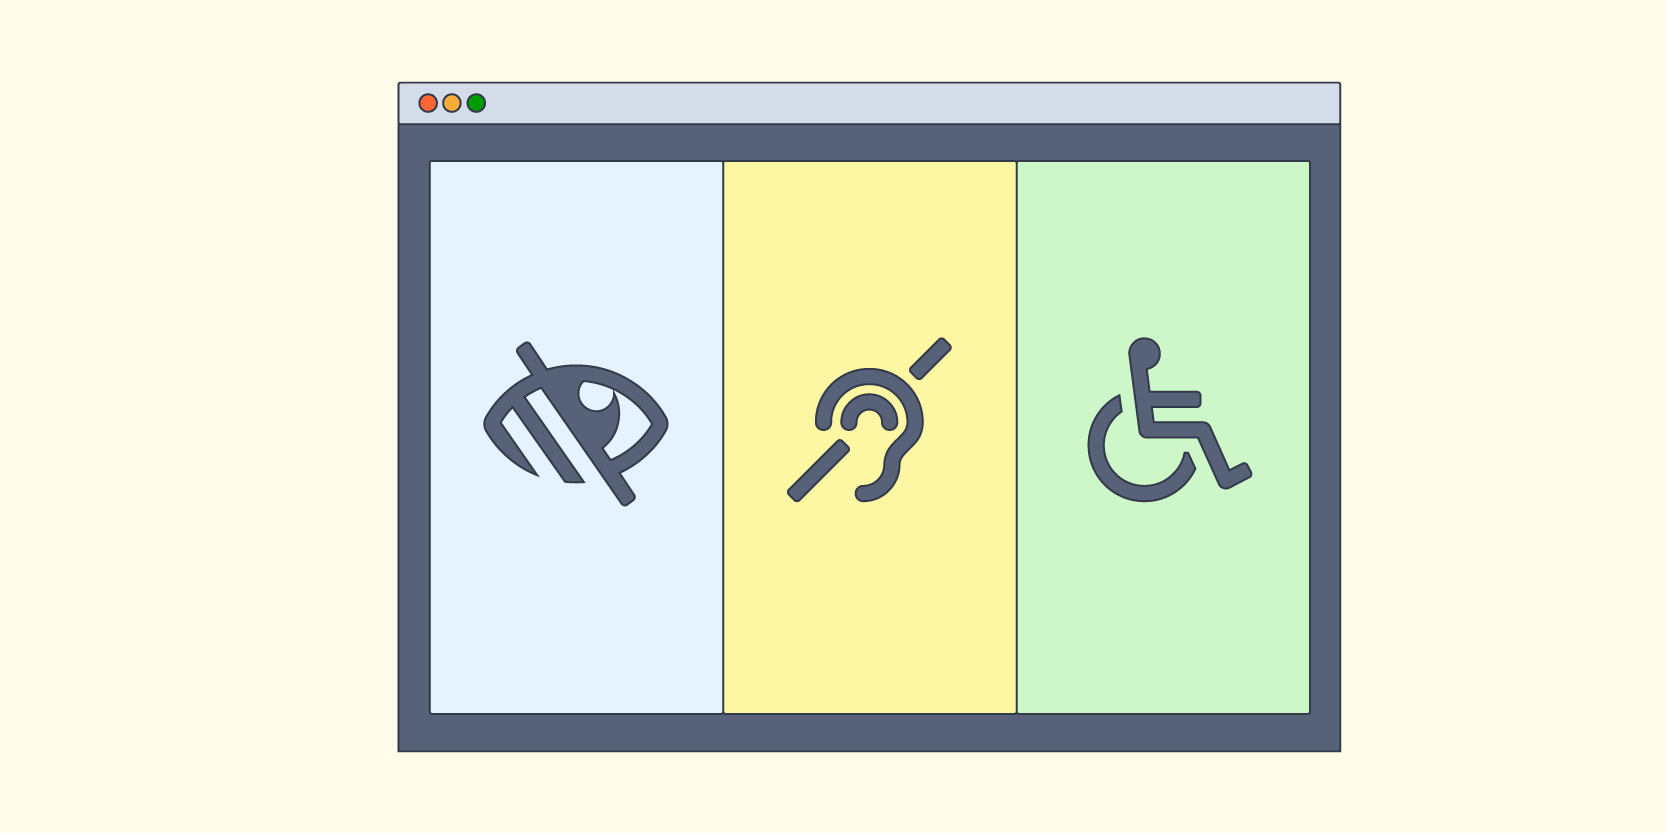 Accessible Software By Design Working To Web Content Accessibility By Amiqus Amiqus